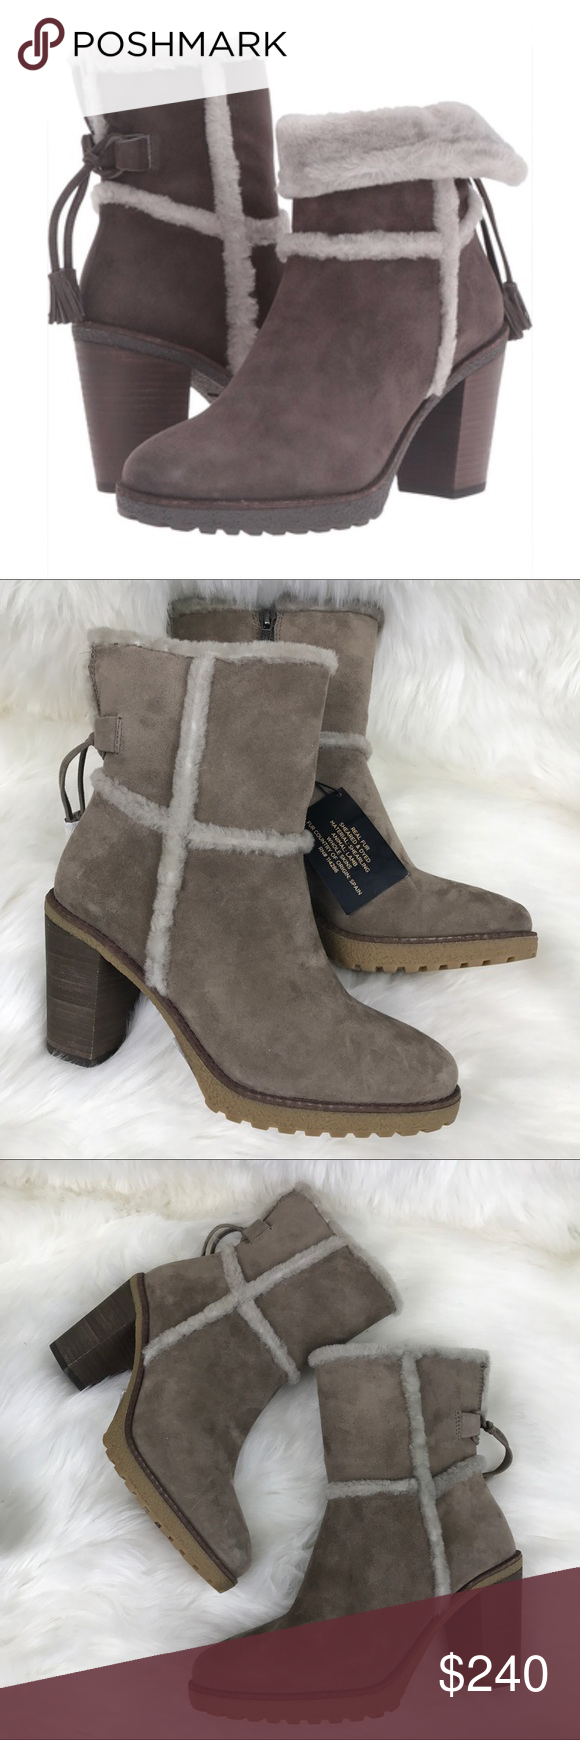 b7d6b6ceca0 Frye Taupe Jan shearling boot short fur . Textured trim for a fashionable  twist. Handcrafted